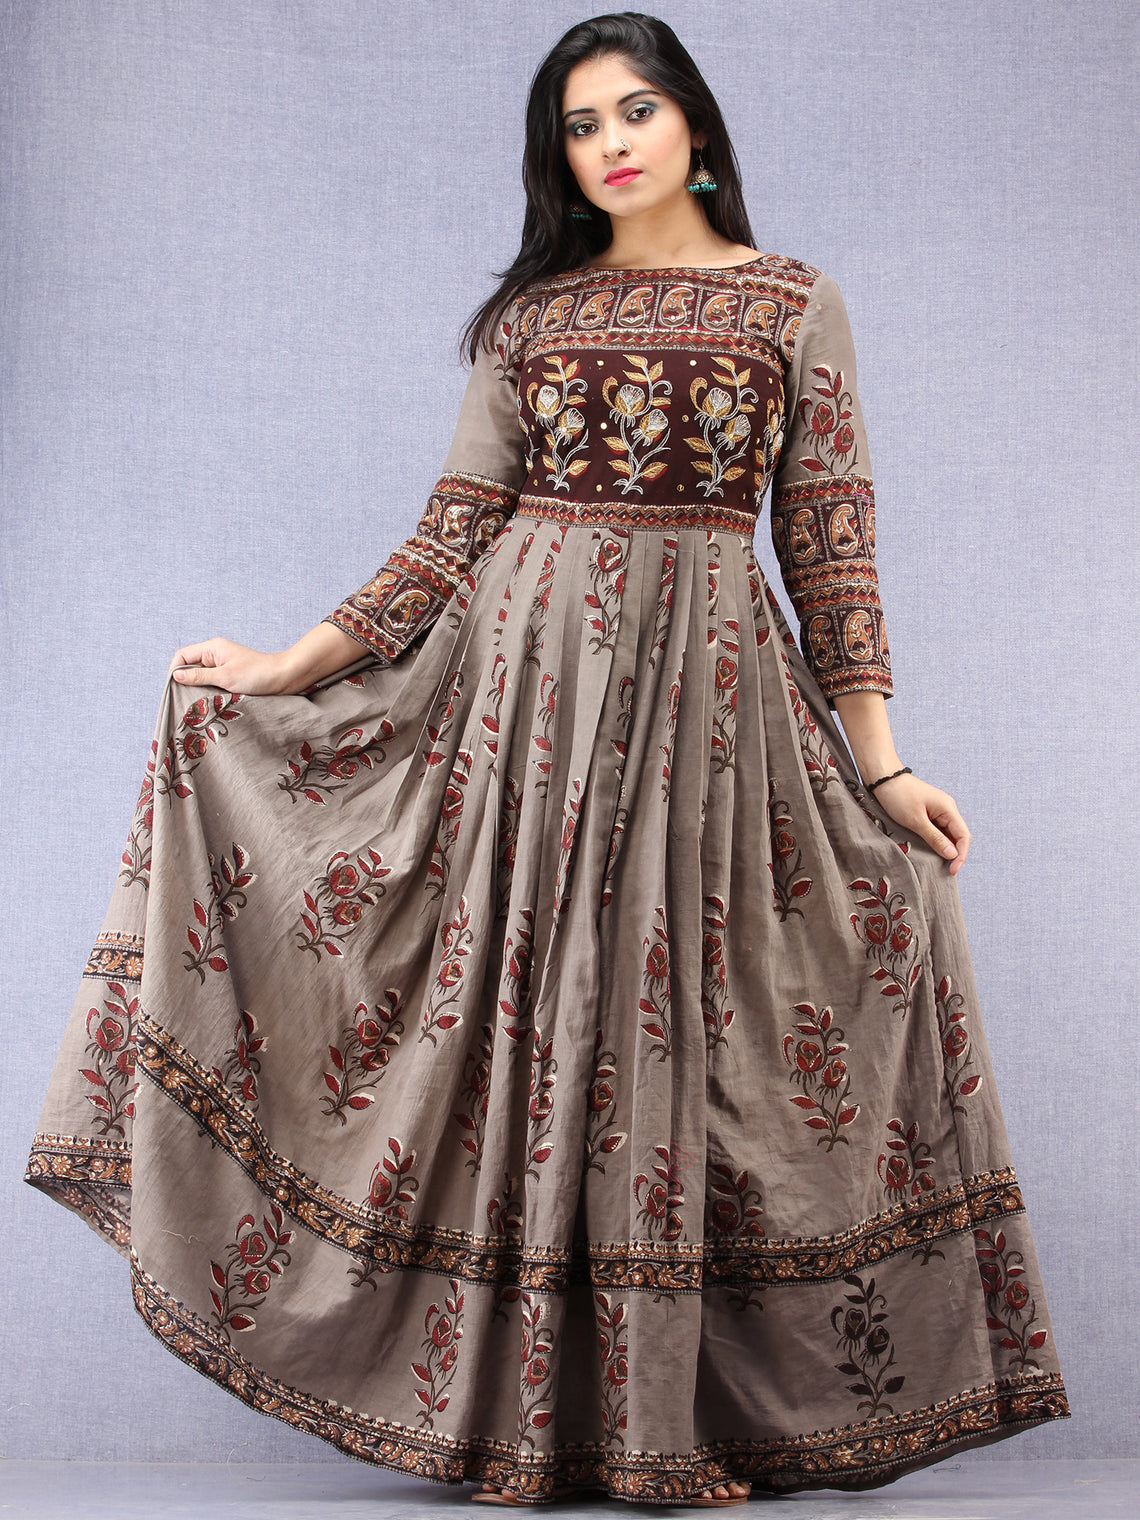 Naaz Falak - Hand Block Mughal Printed Long Cotton Embroidered Dress - DS106F001